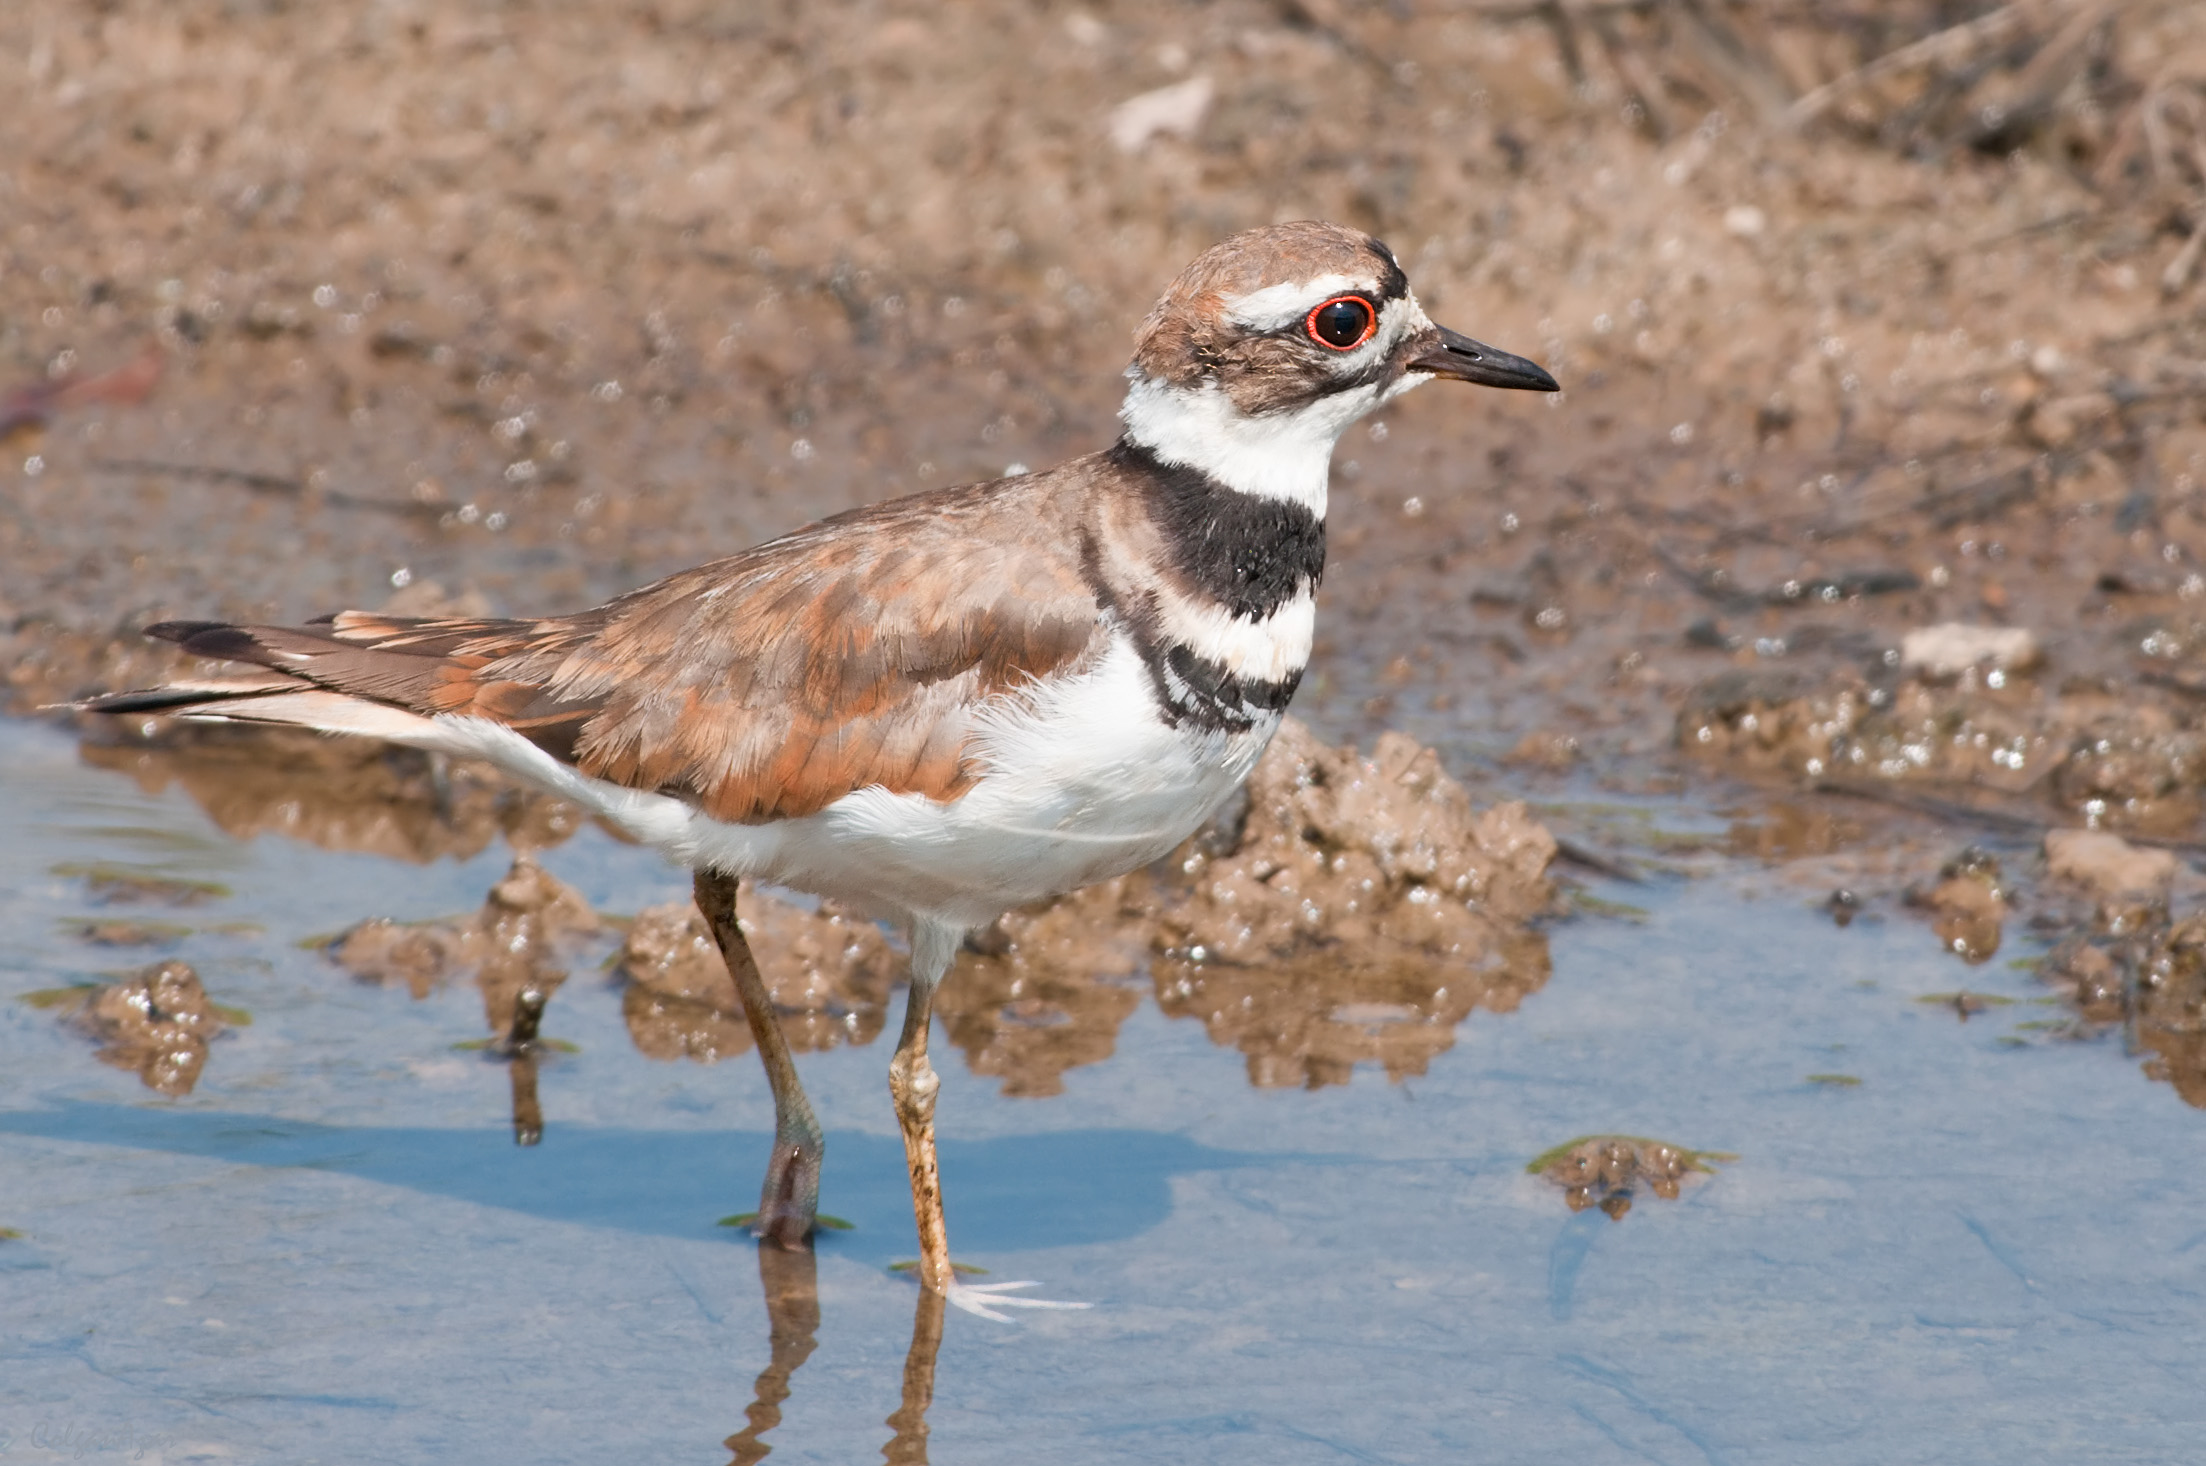 """- Killdeer (Charadrius vociferus)Killdeer are found in open areas such as fields, prairies, and empty lots. They are a type of plover, which are characterized by short beaks and longer legs. Killdeer are most commonly seen running quickly along the ground. Their main diet is invertebrates, such as worms and insects. They weigh around 2.6-4.5 oz. and have a wingspan of 18.1-18.9 in. Killdeer are named for the noise they make in flight, which is a high-pitched """"kill-deer.""""Photo Credits: Kelly Colgan Azar"""